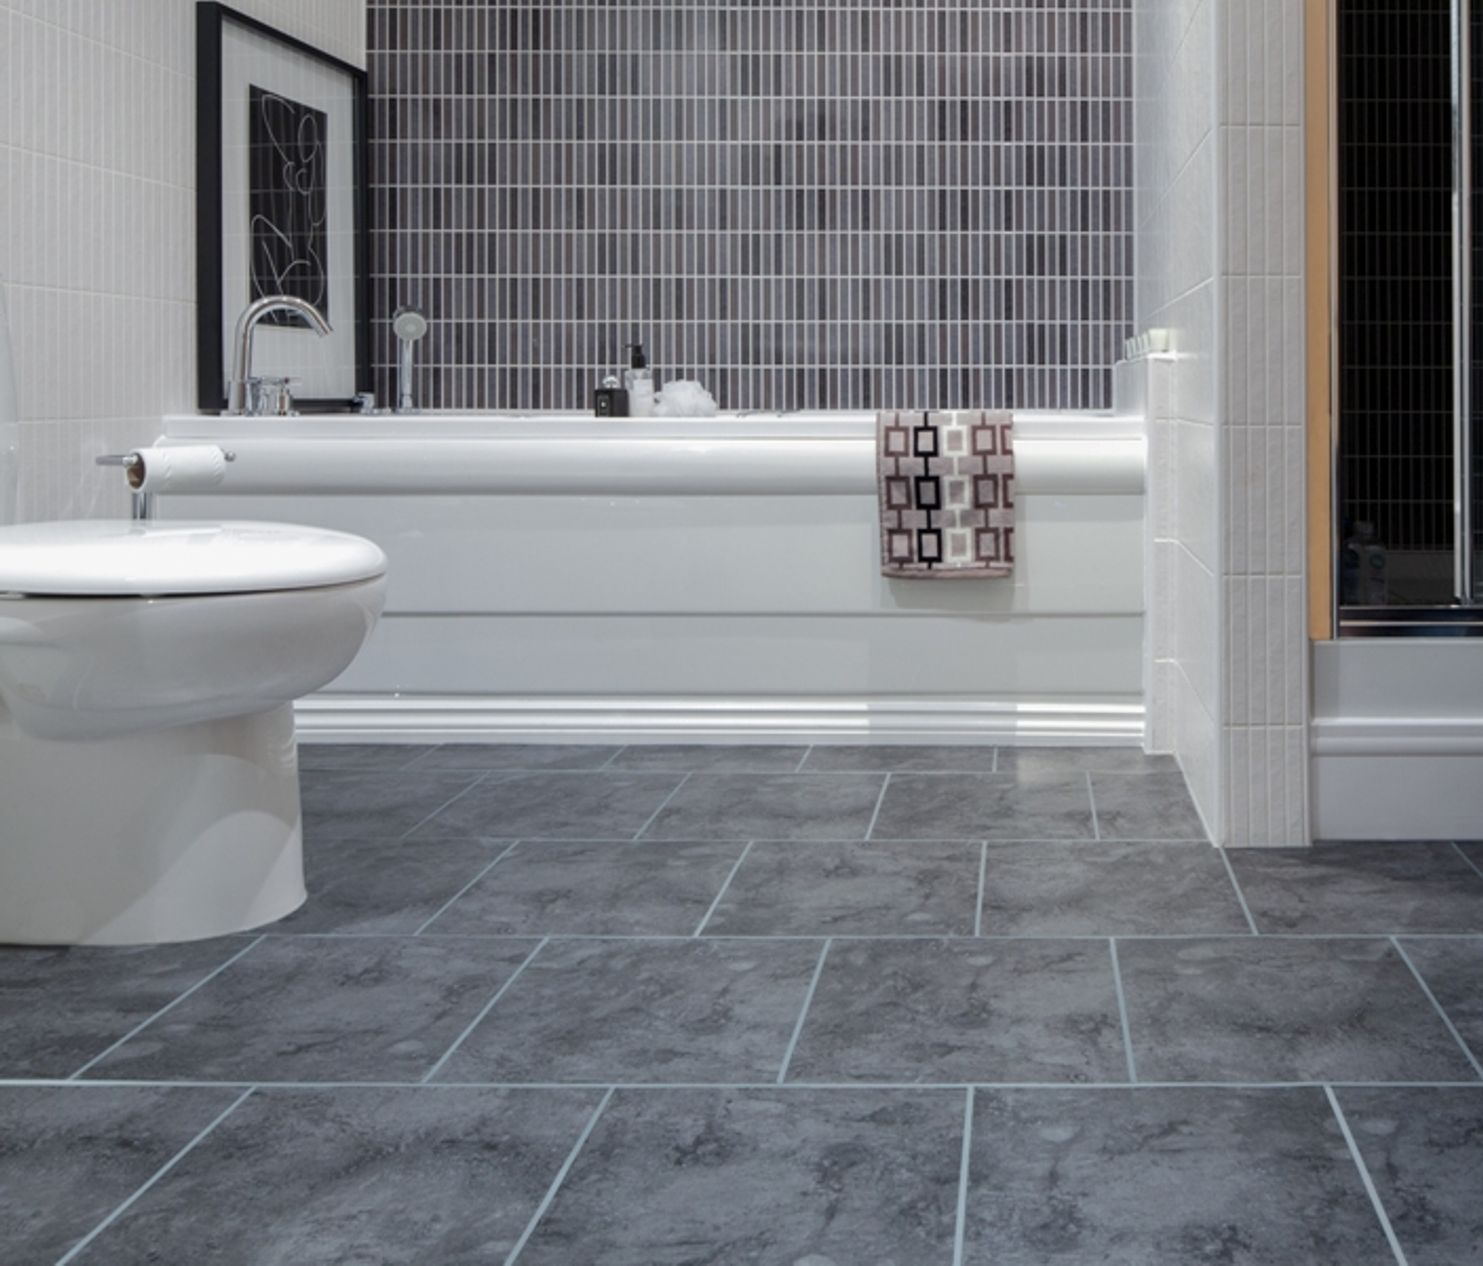 The Awesome Web Awesome Gray Bathroom Tile Floor Grey Bathroom Floor Tiles For Neutral Also Home Depot Bathroom Tiles